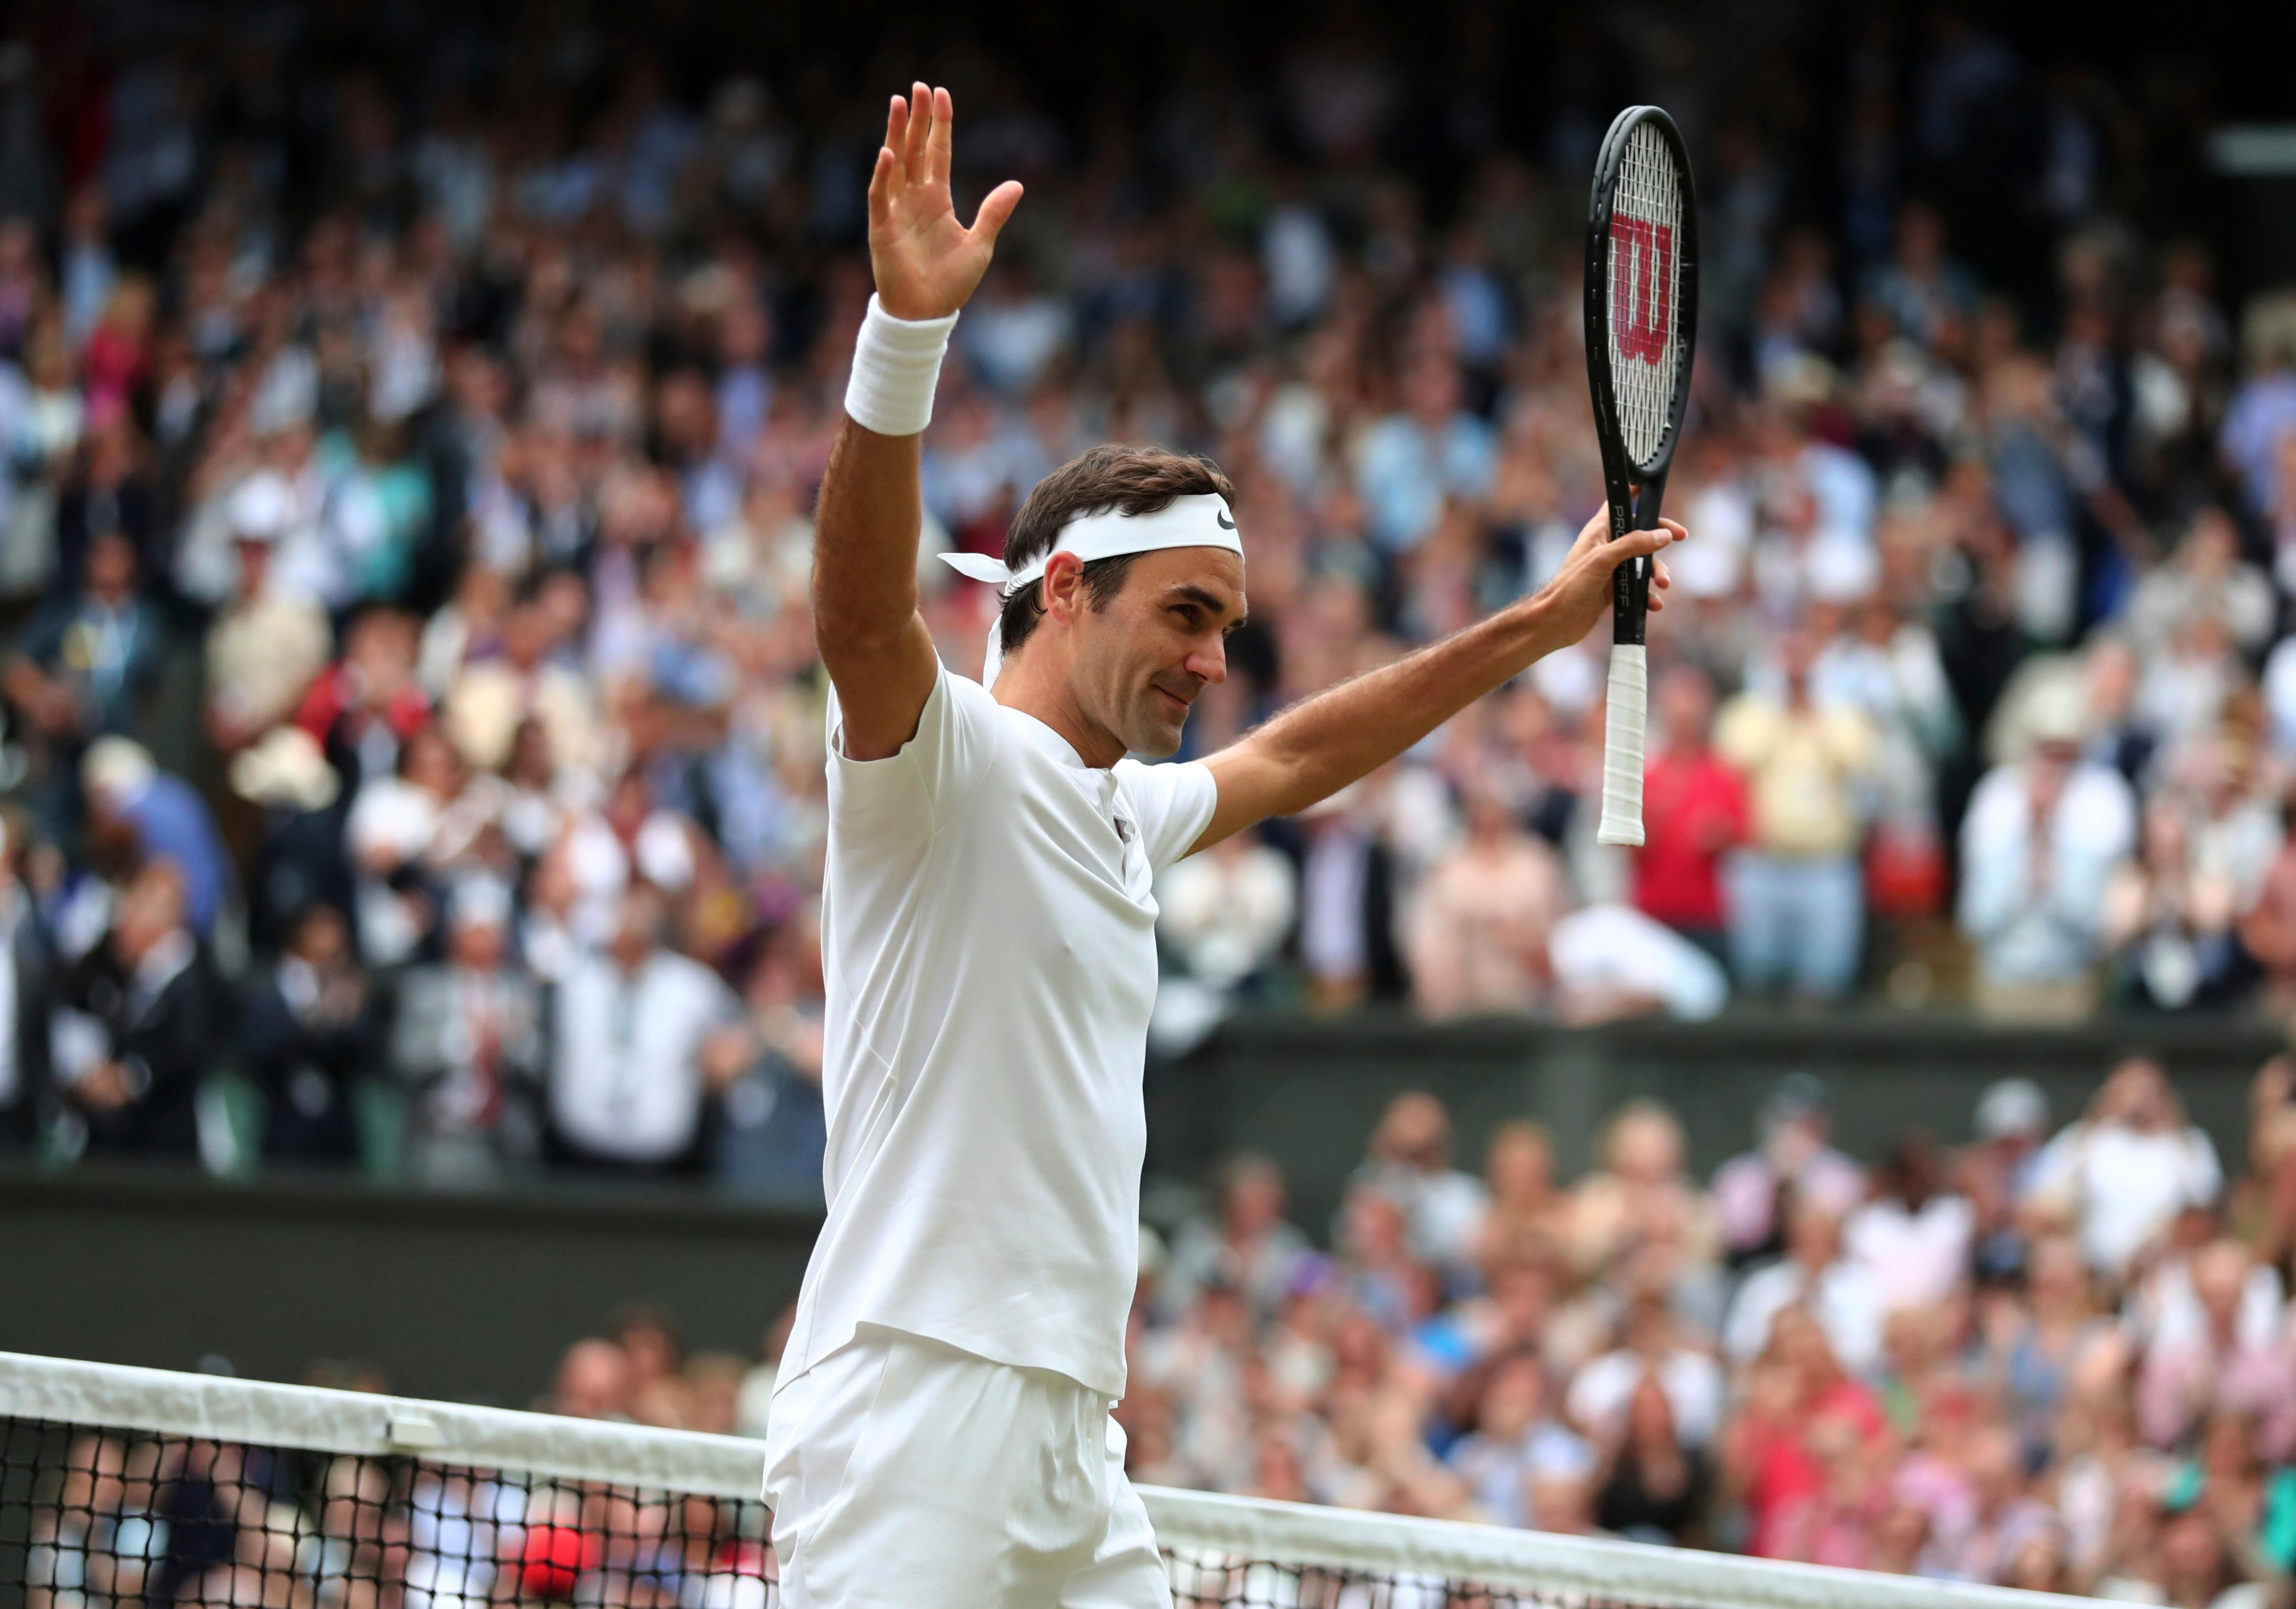 Switzerland's Roger Federer celebrates after beating Czech Republic's Tomas Berdych in their Men's Singles semifinal match on day eleven at the Wimbledon Tennis Championships in London, Friday, July 14, 2017. (Gareth Fuller/Pool Photo via AP)